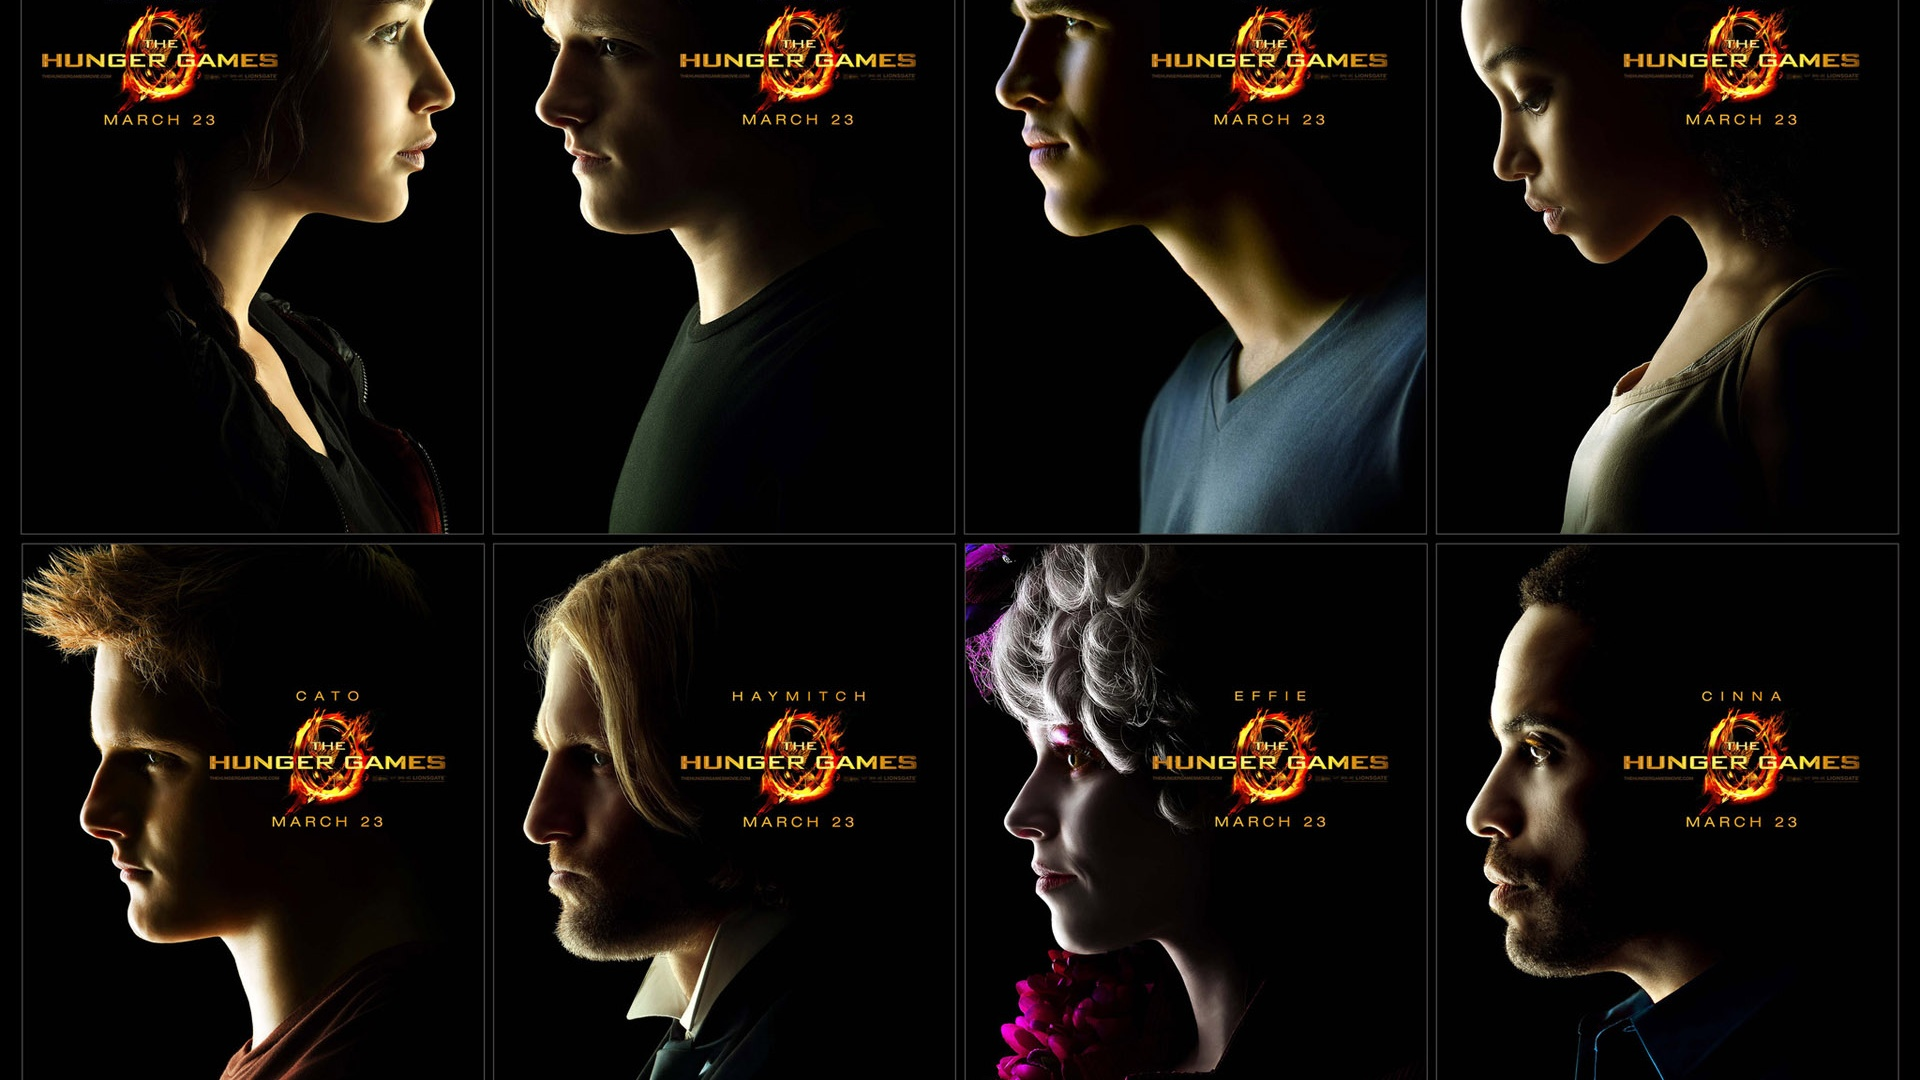 1920x1080 hunger games posters desktop pc and mac wallpaper voltagebd Image collections